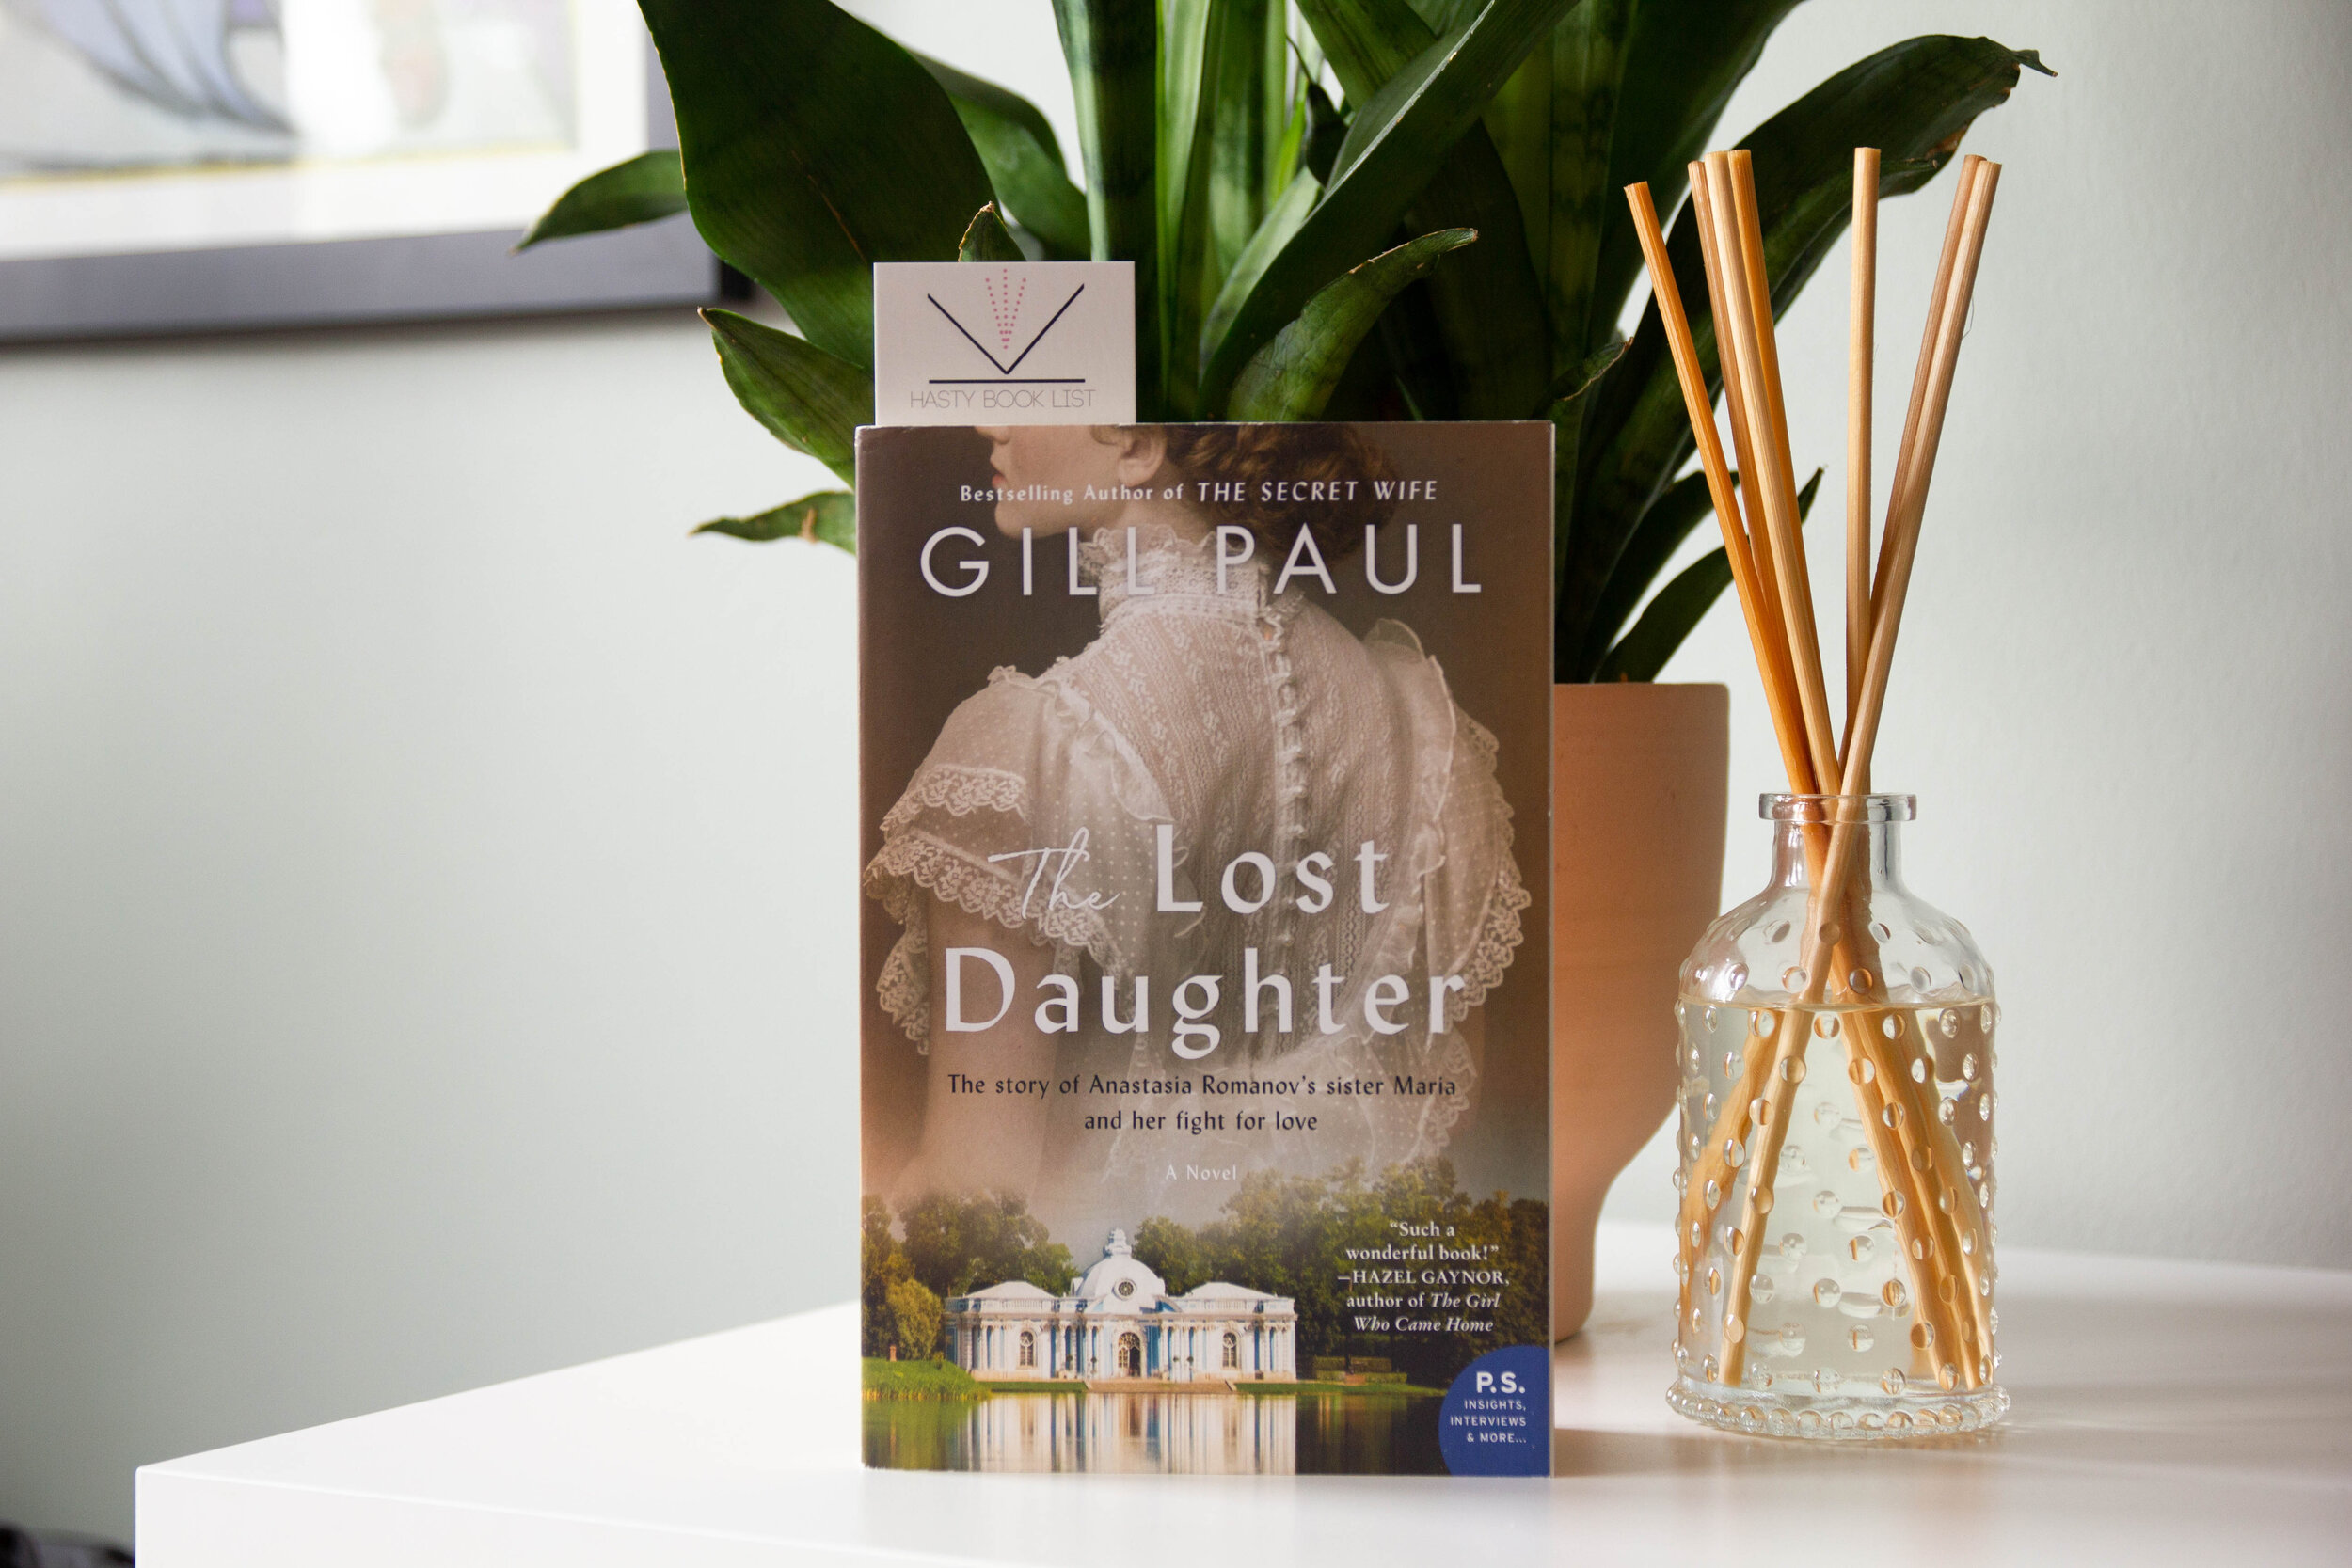 the lost daughter by gill paul-1.jpg